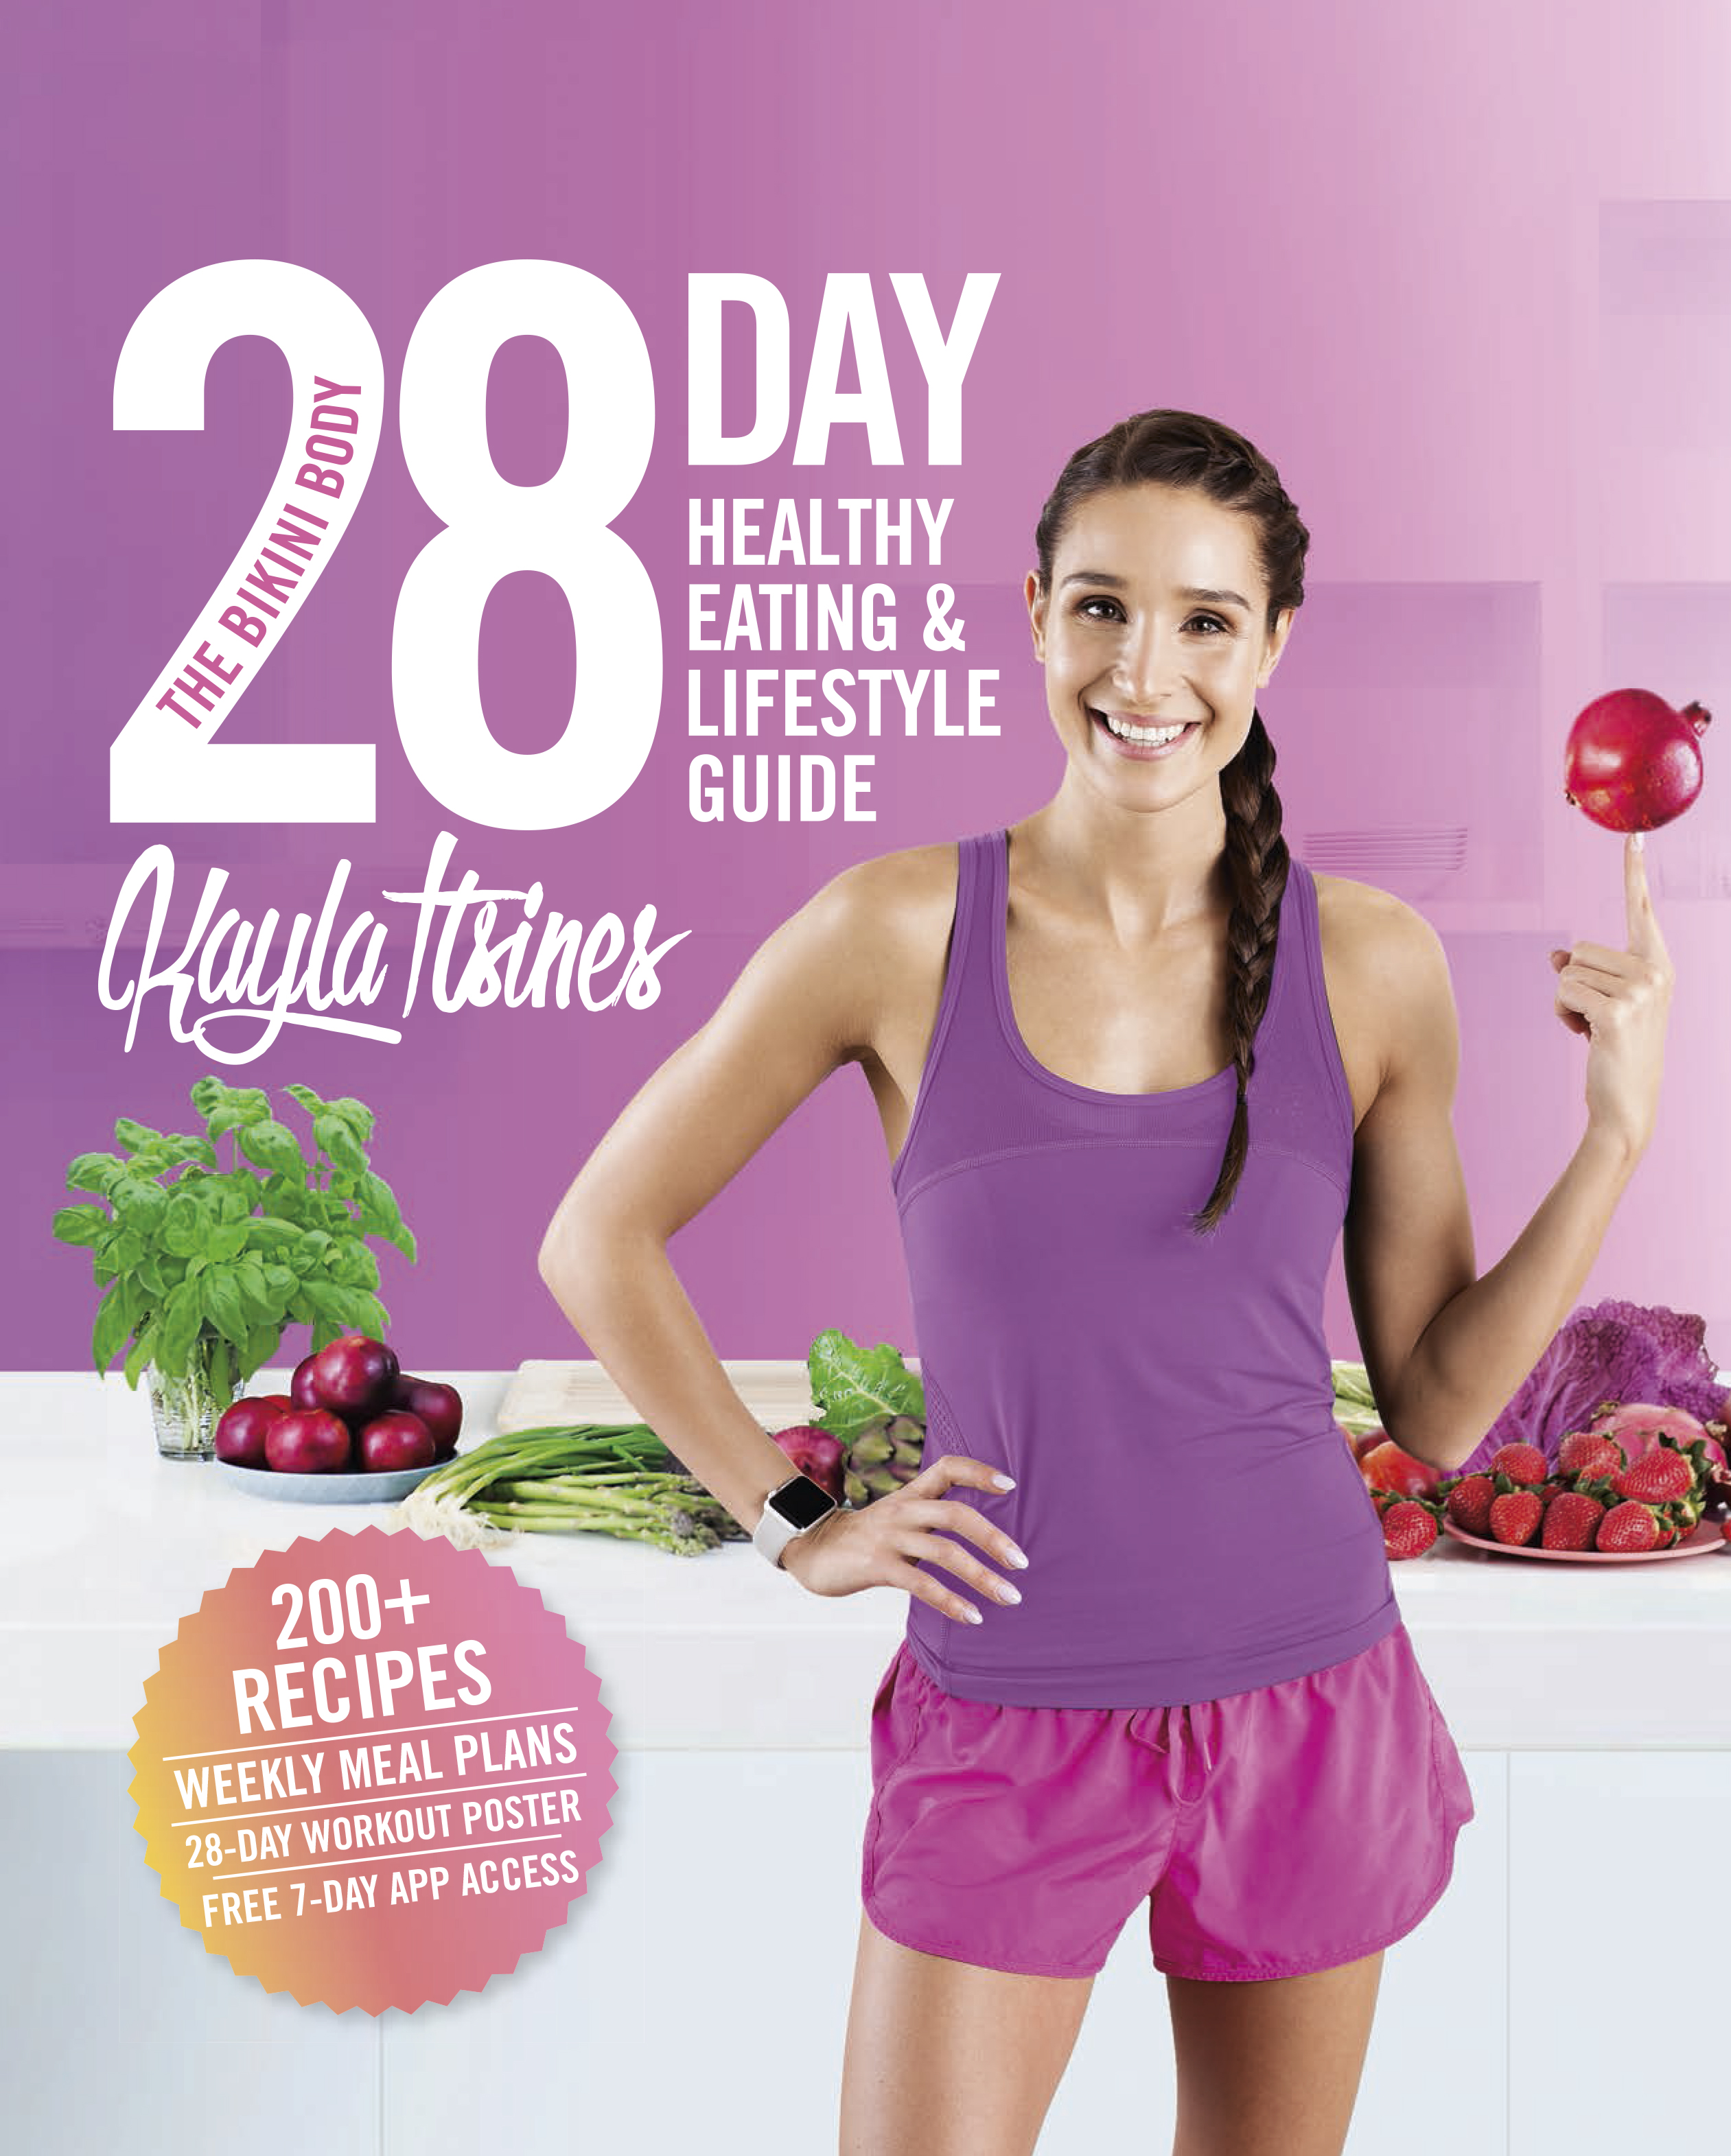 The Pan Bikini Healthy 28 Guide Lifestyle Day Eatingamp; Body hQrtsBoCdx